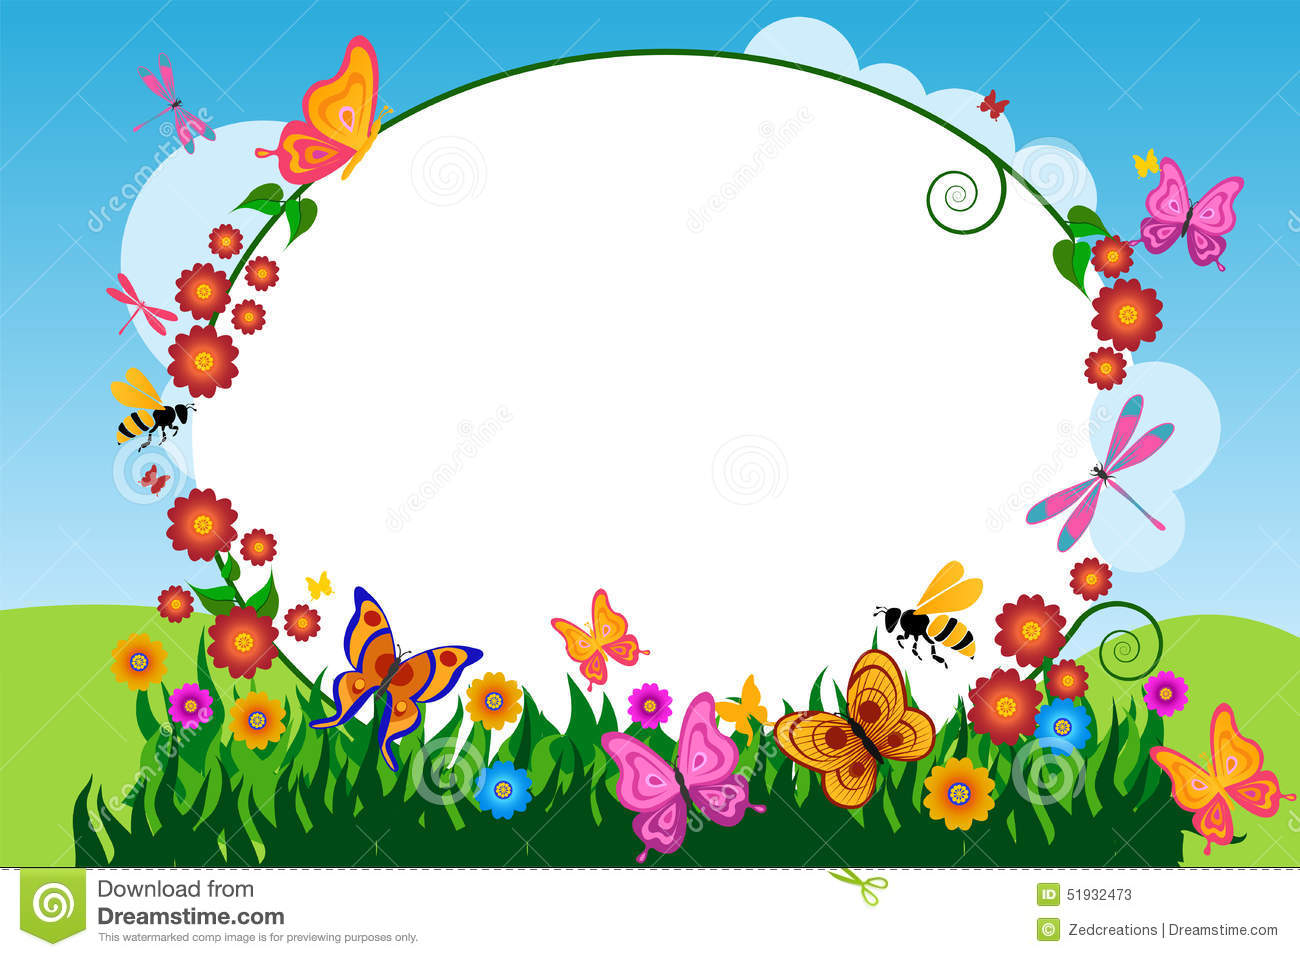 Page 1 of RoyaltyFree RF stock image gallery featuring Pink Butterfly clipart illustrations and Pink Butterfly cartoons